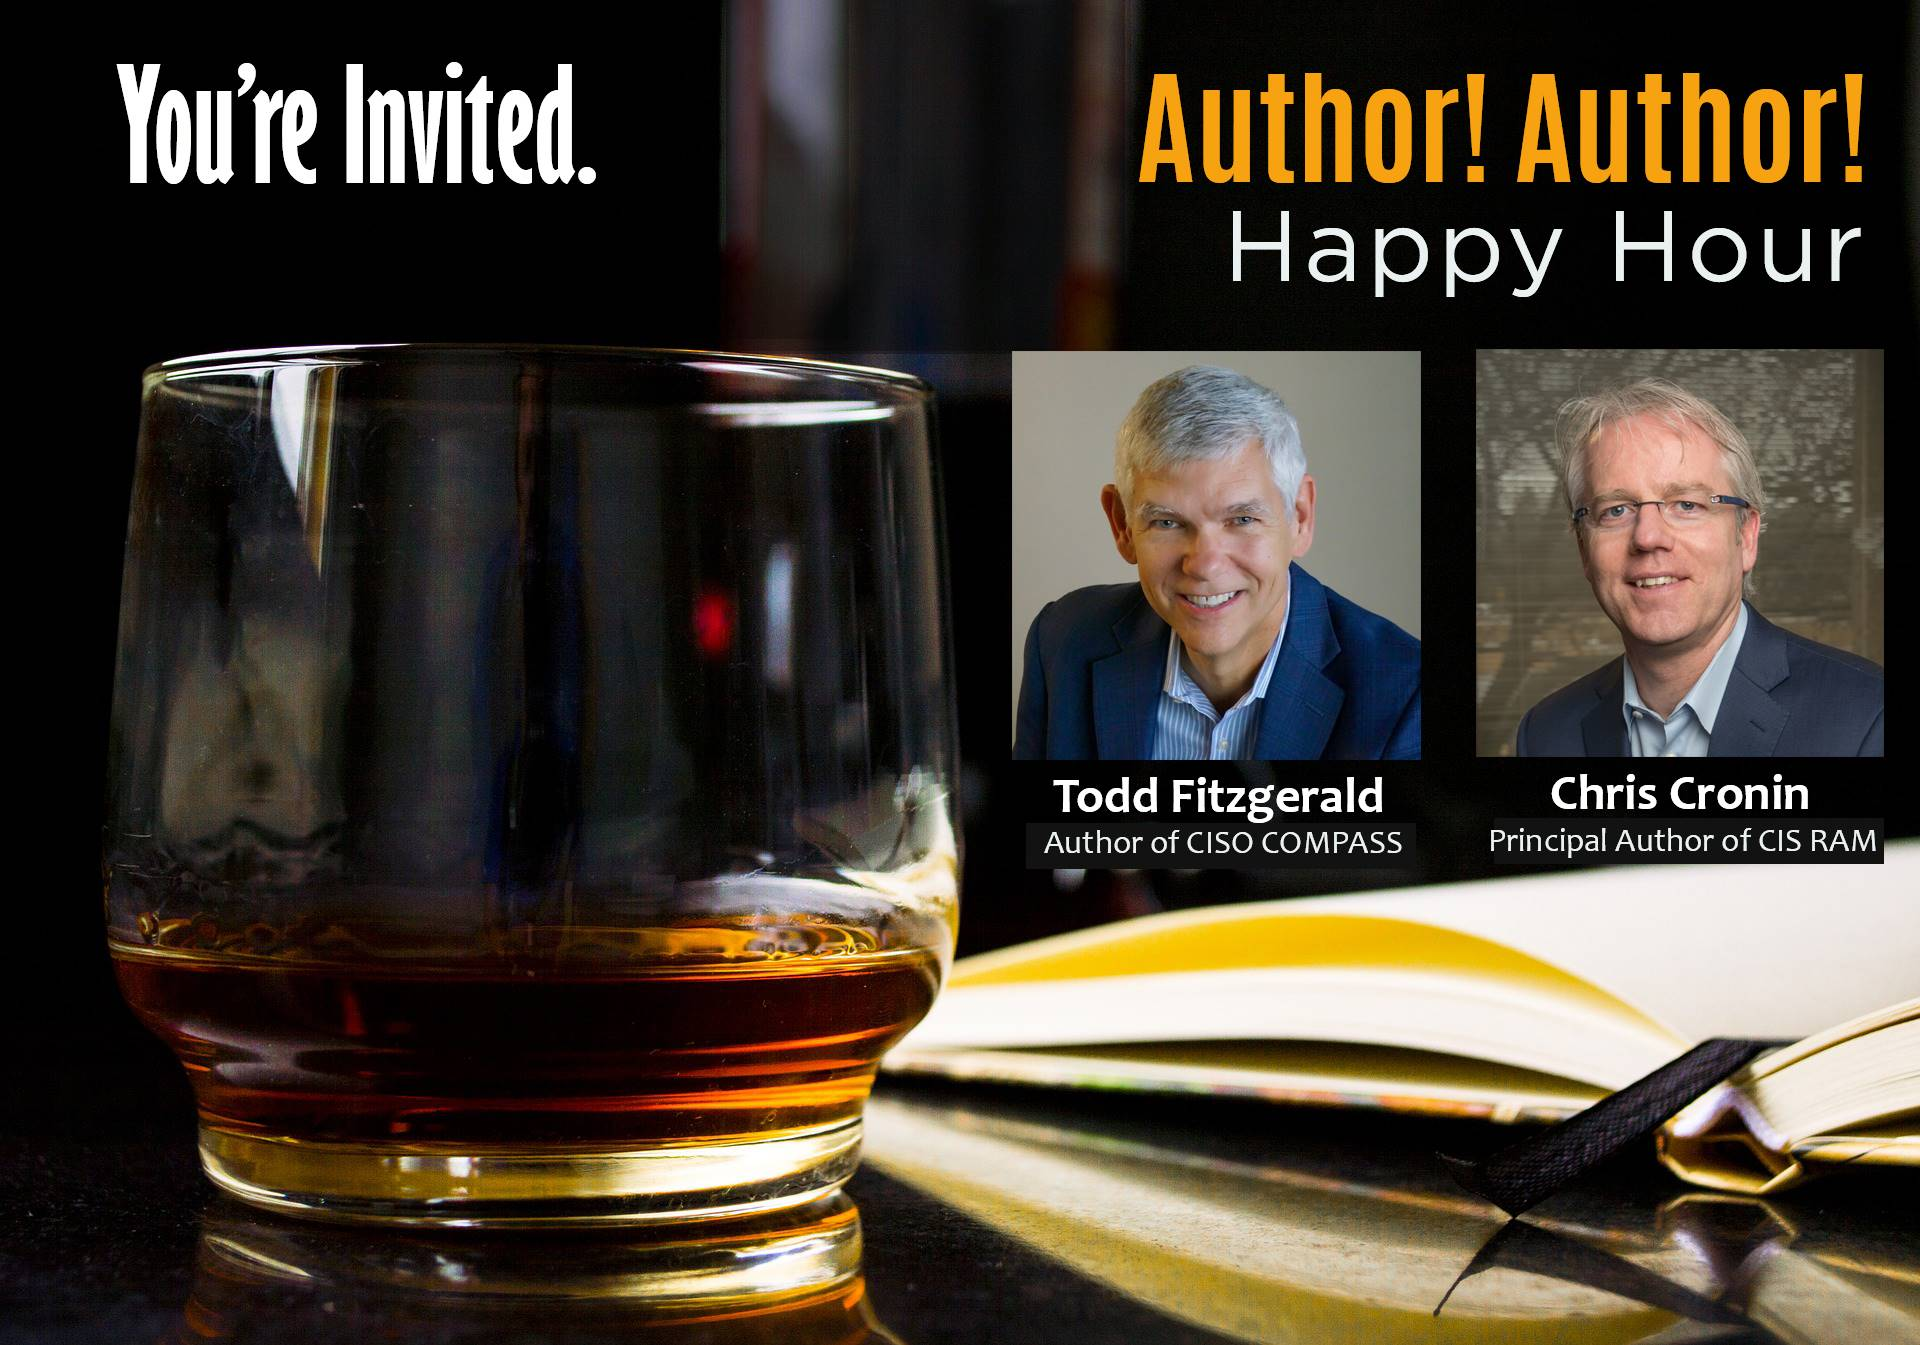 Author Author Happy Hour at RSA,